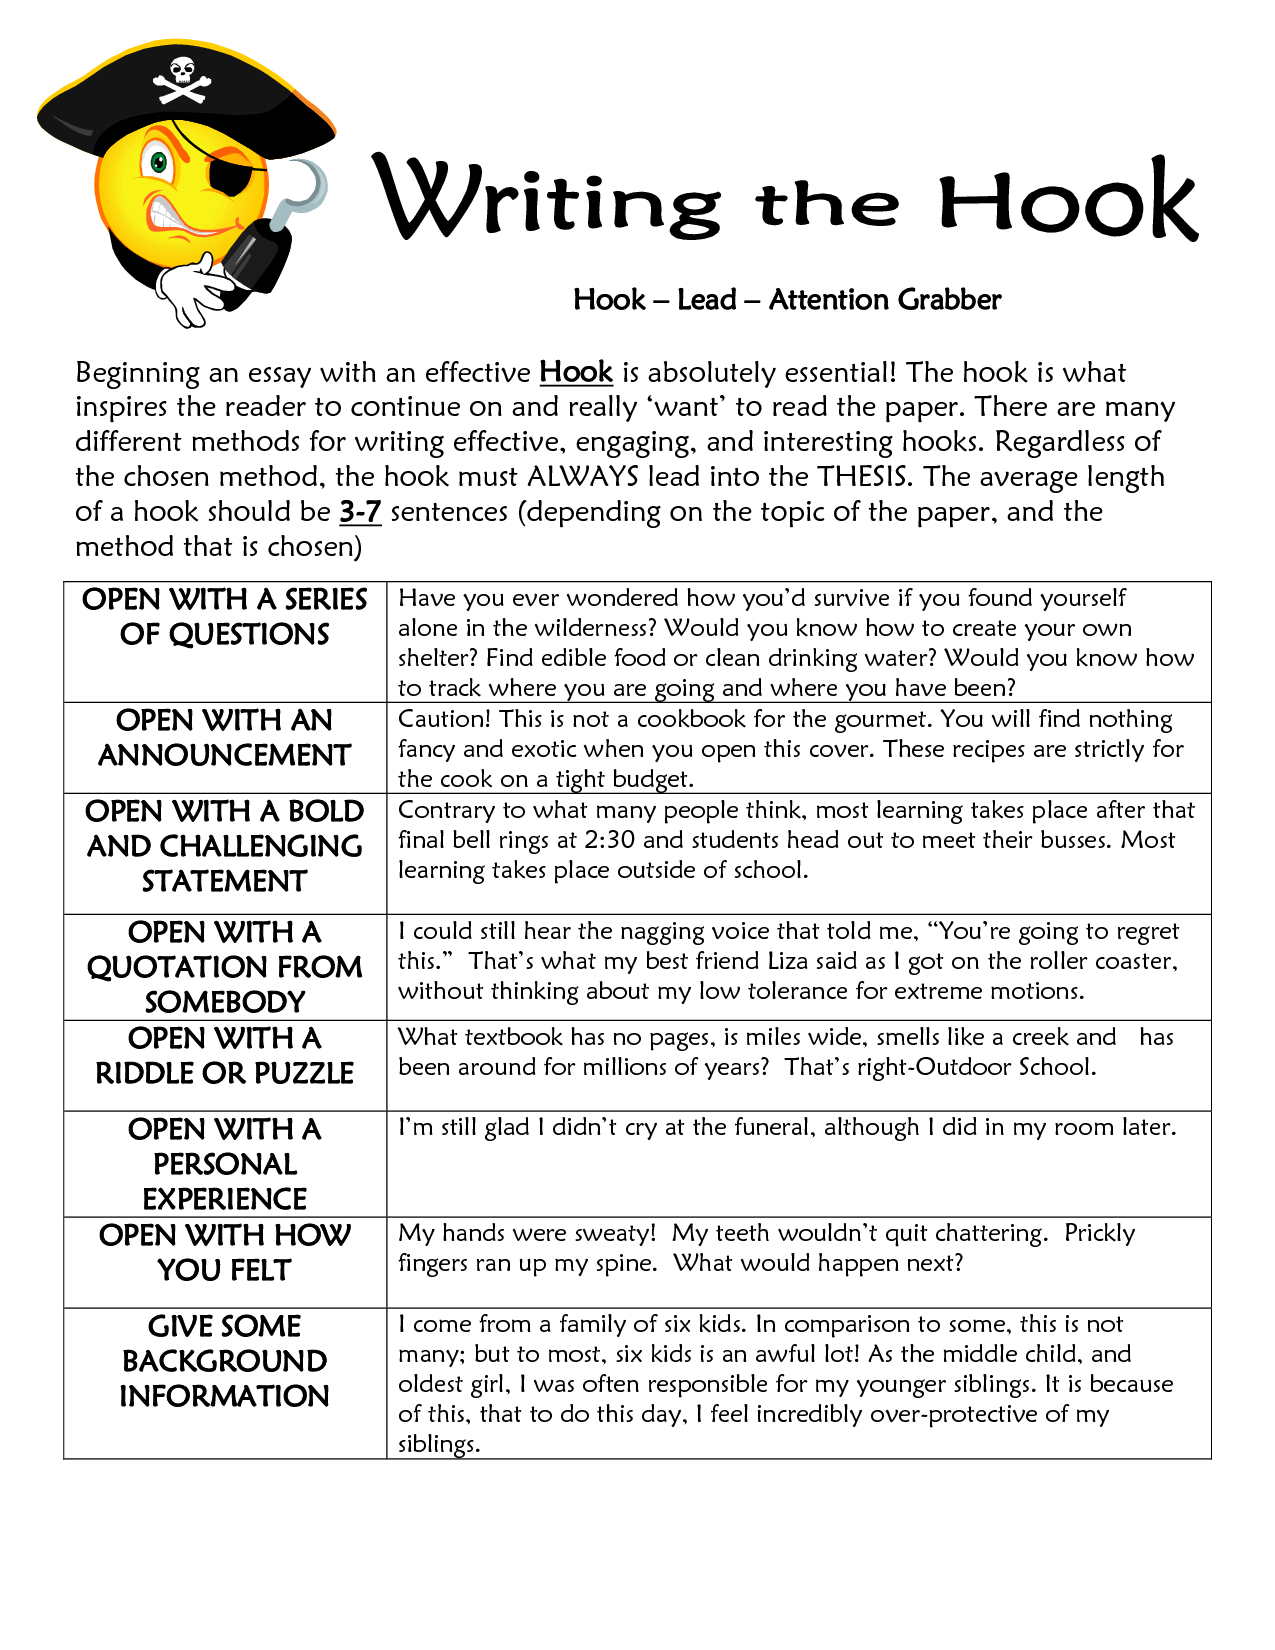 Examples of essay hooks hook c lead c attention grabber beginning